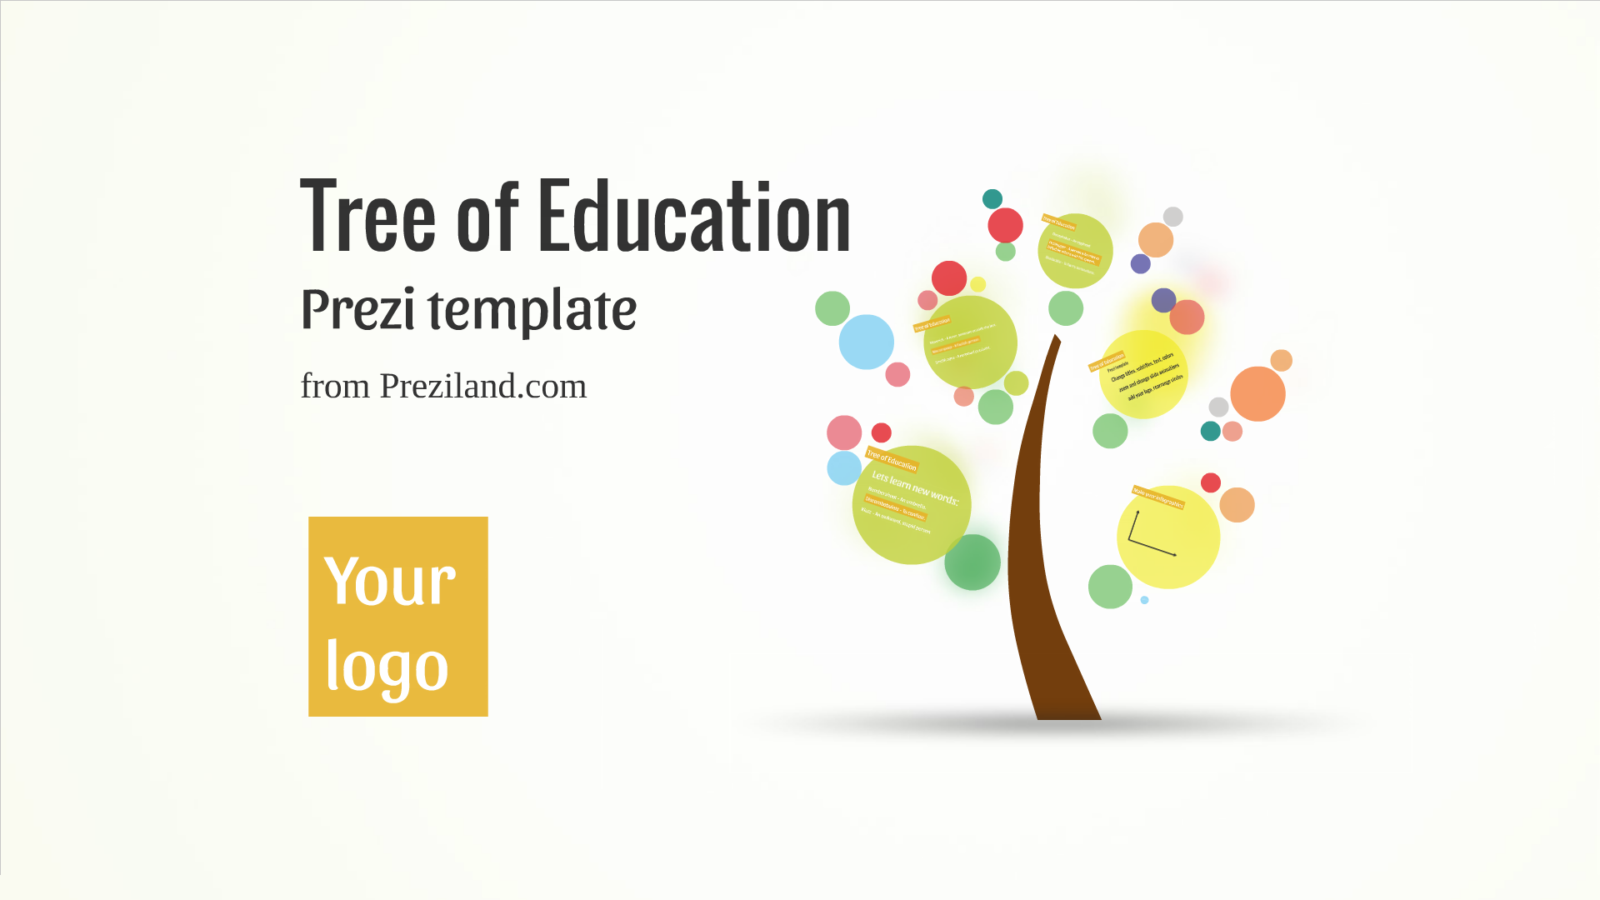 Tree of education Prezi template